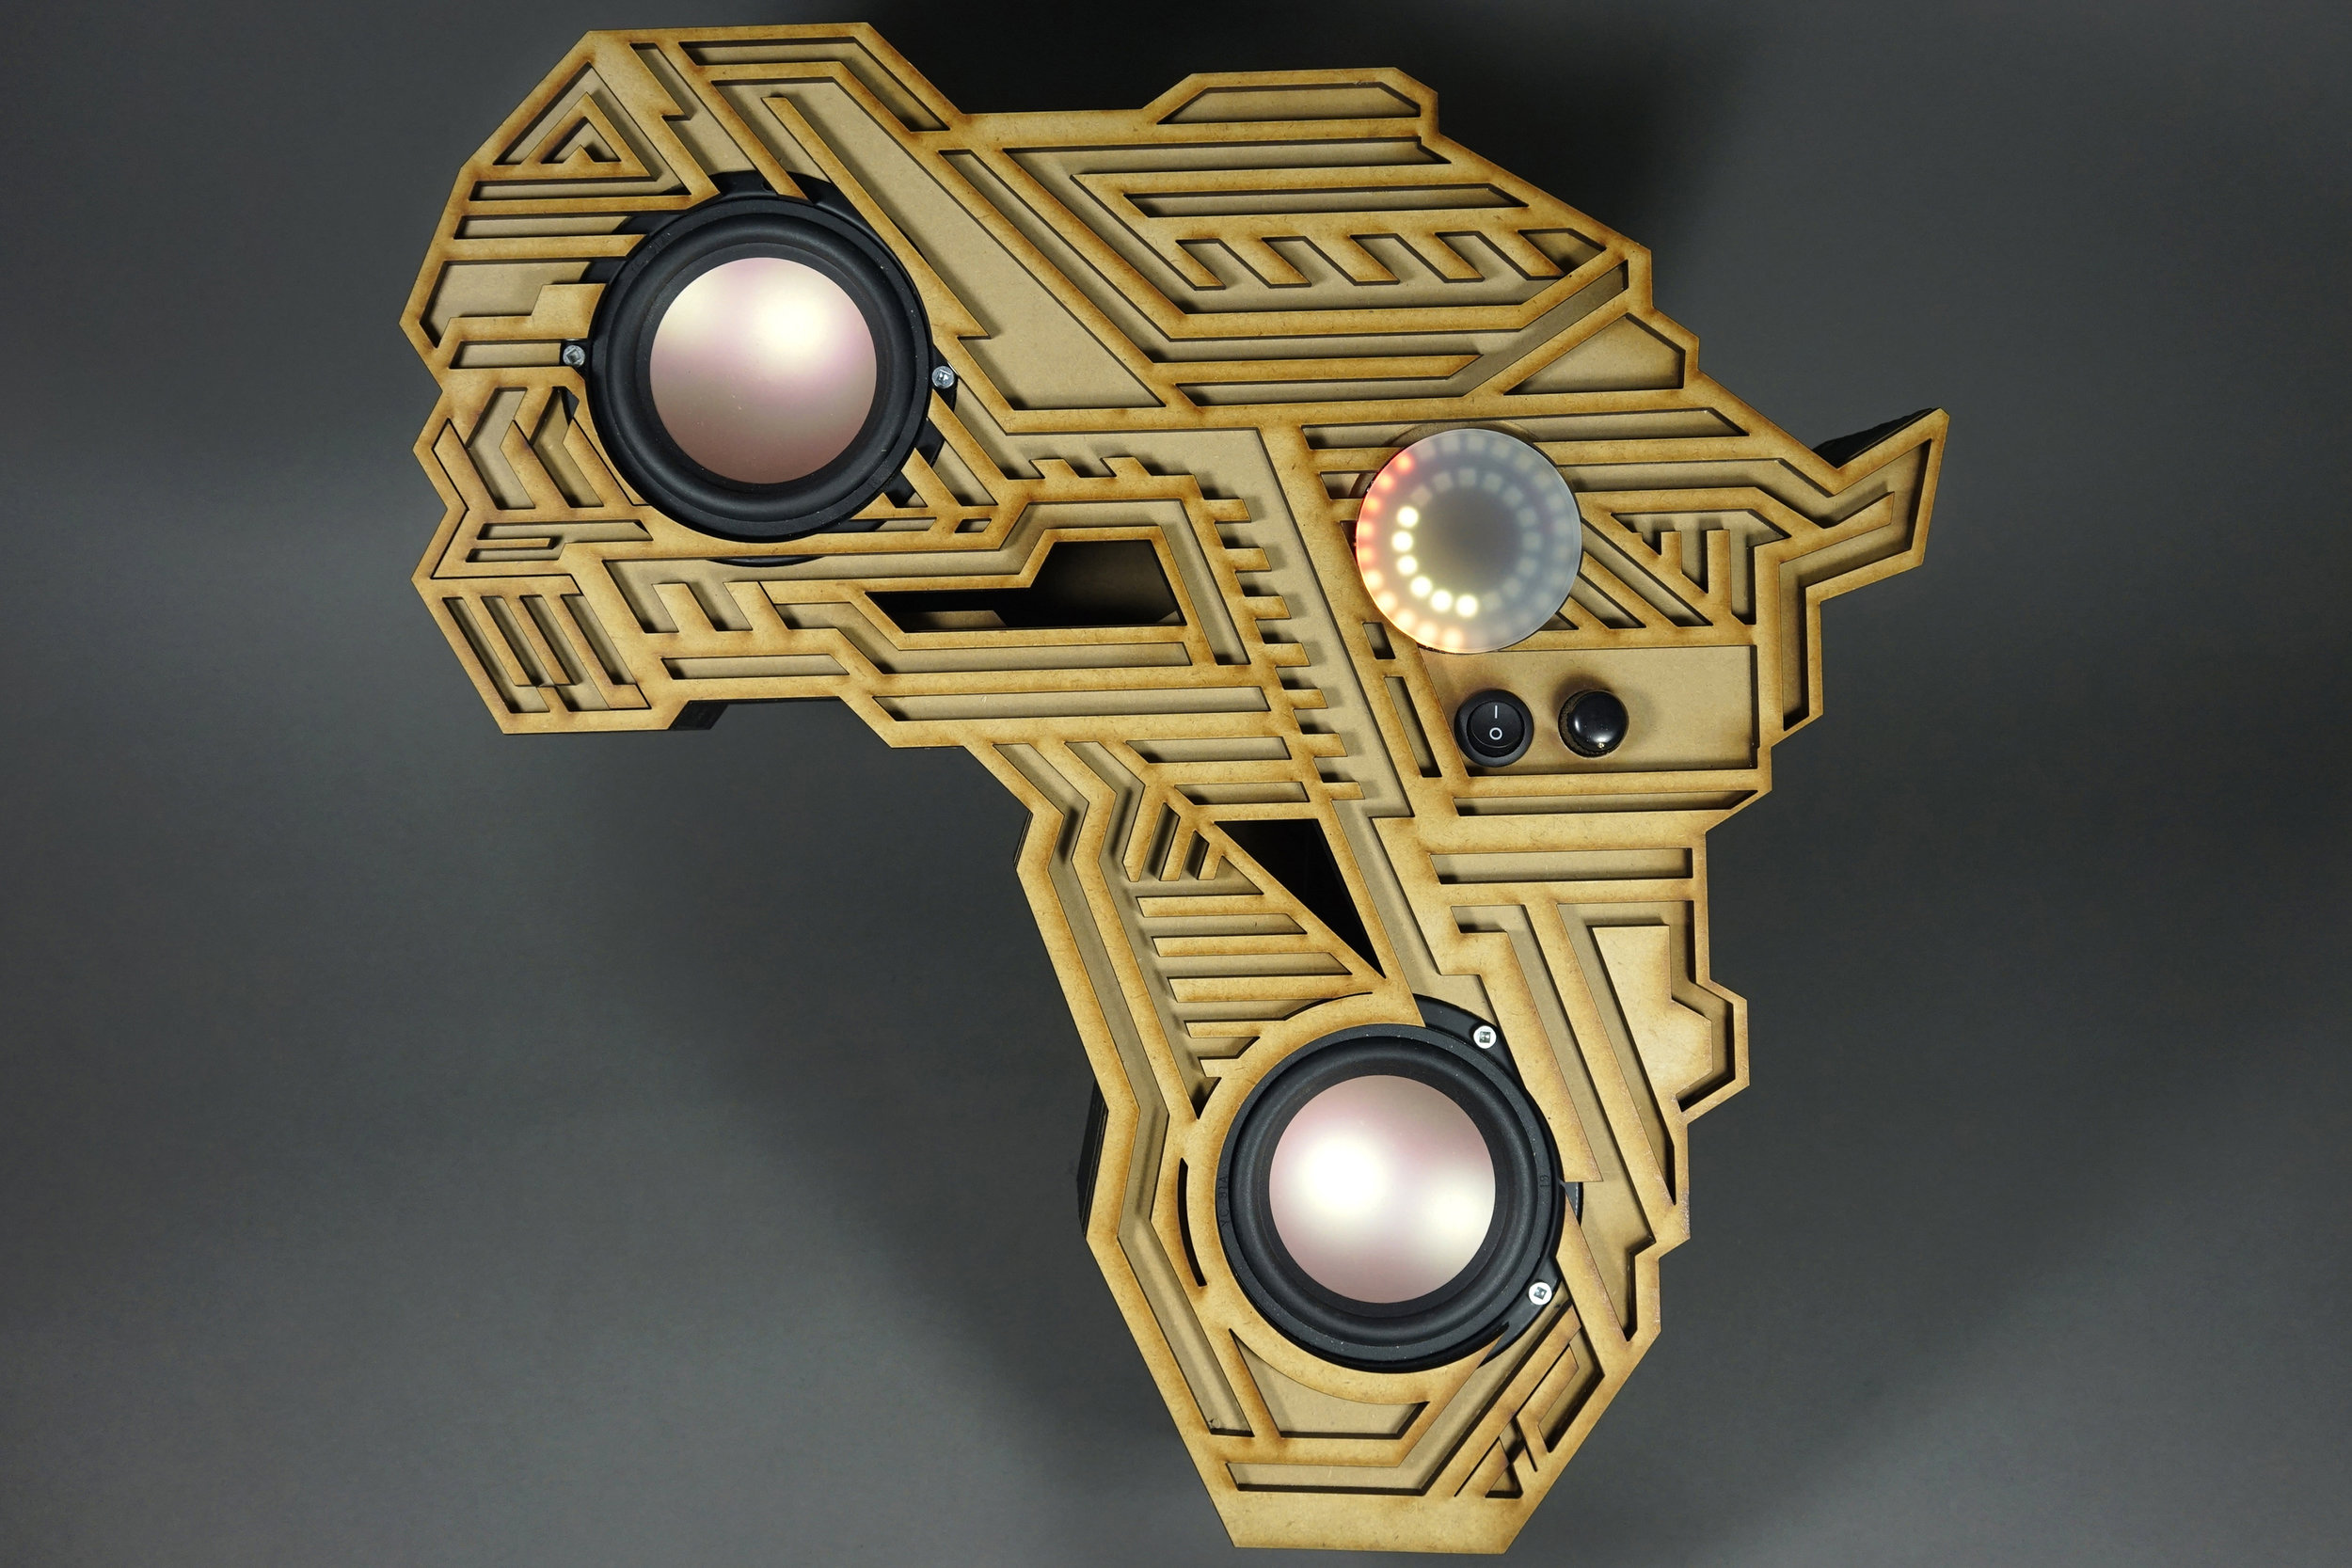 Rafa's bluetooth African continent wall-hanging amplifier